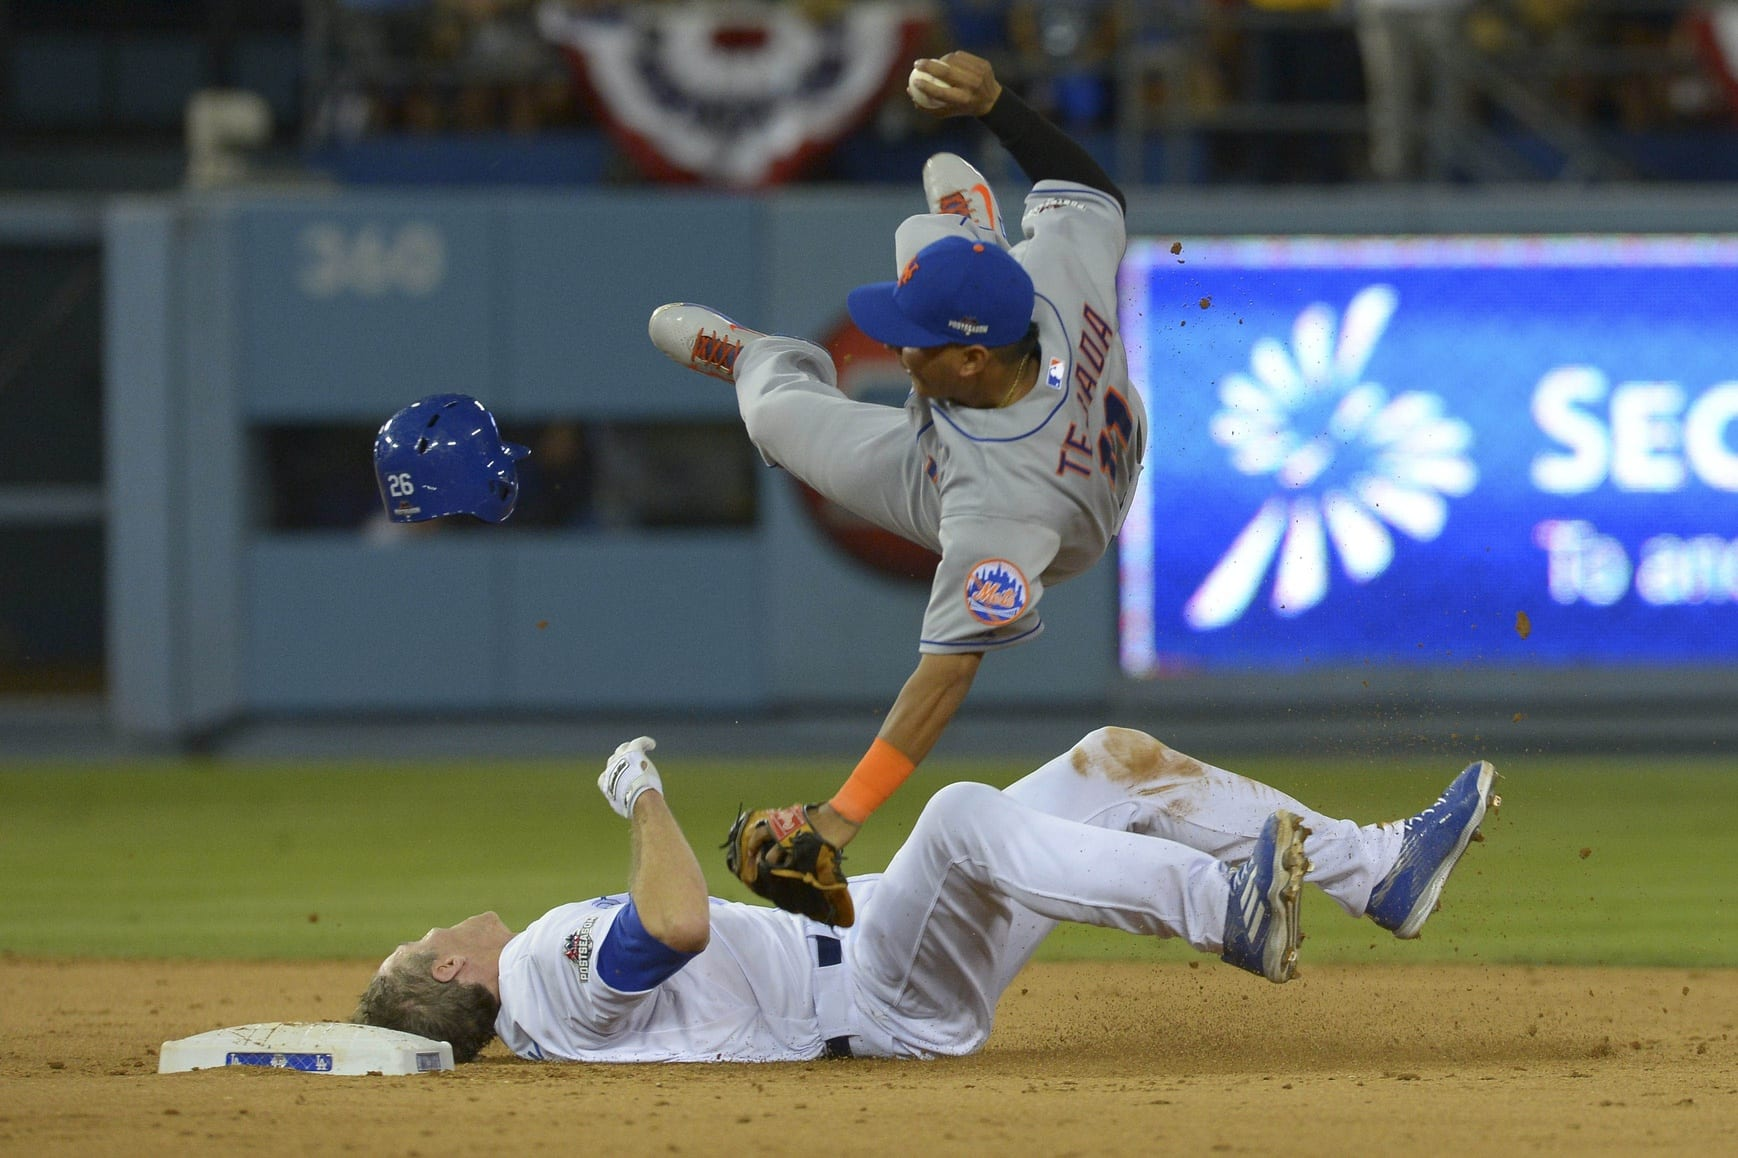 Mlb News: New Sliding Rule At Second Base Under Consideration